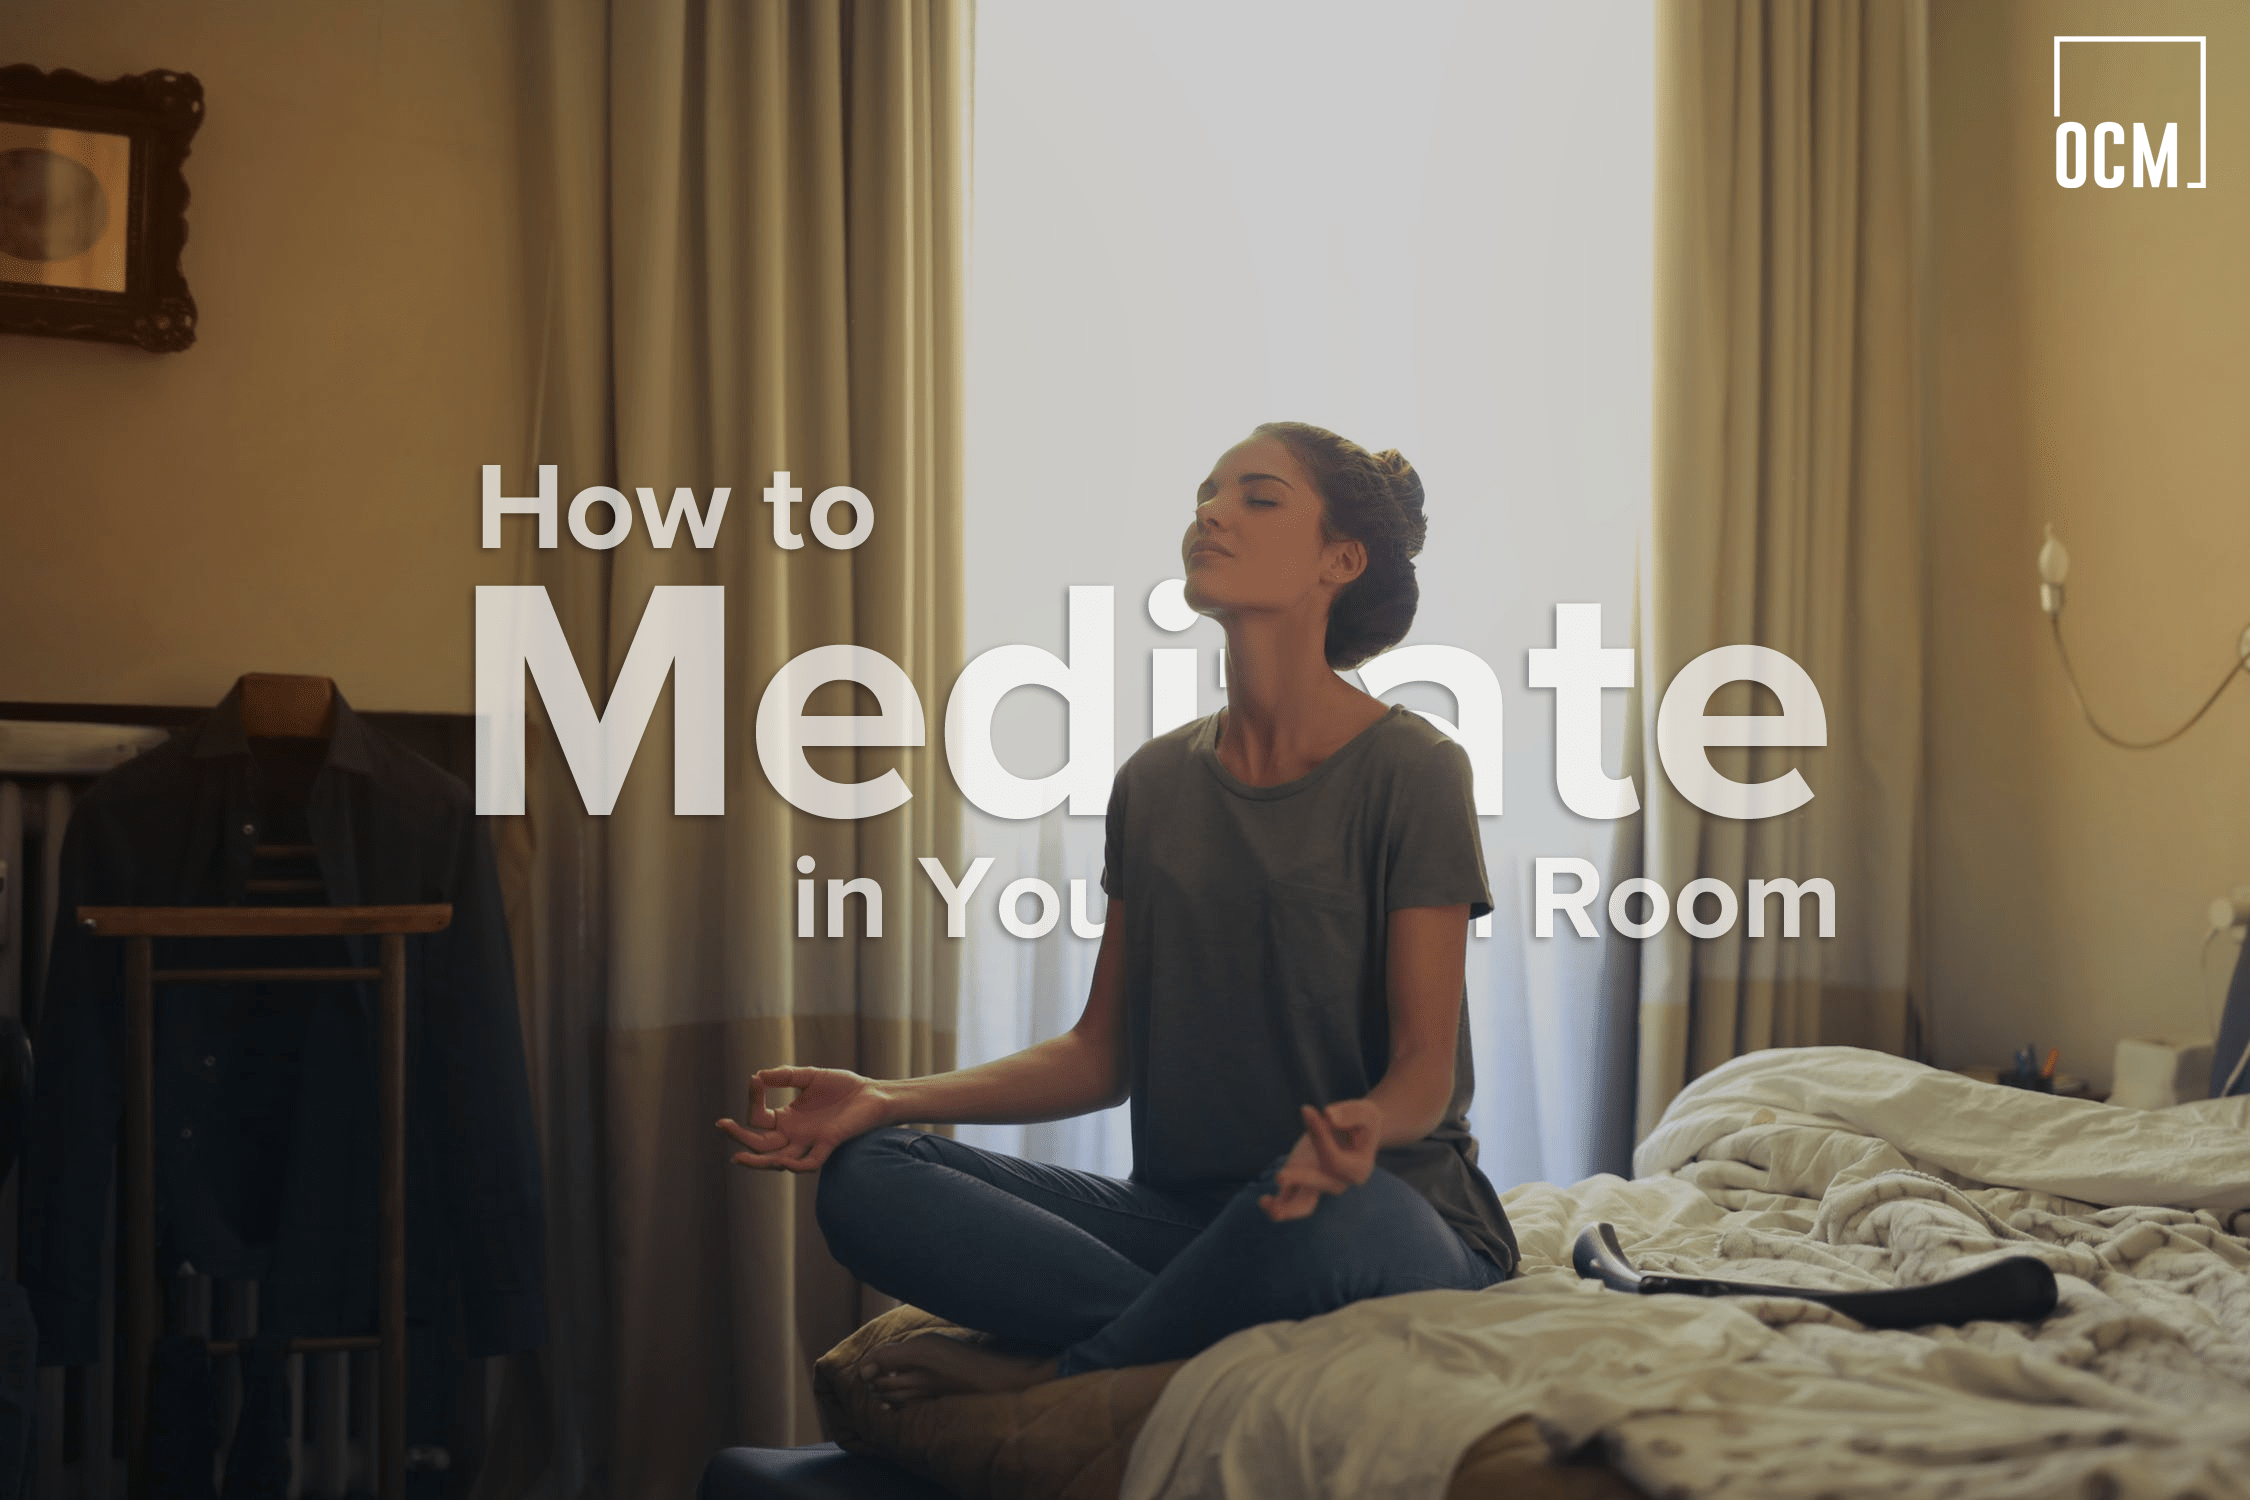 How to Meditate in Your Dorm Room